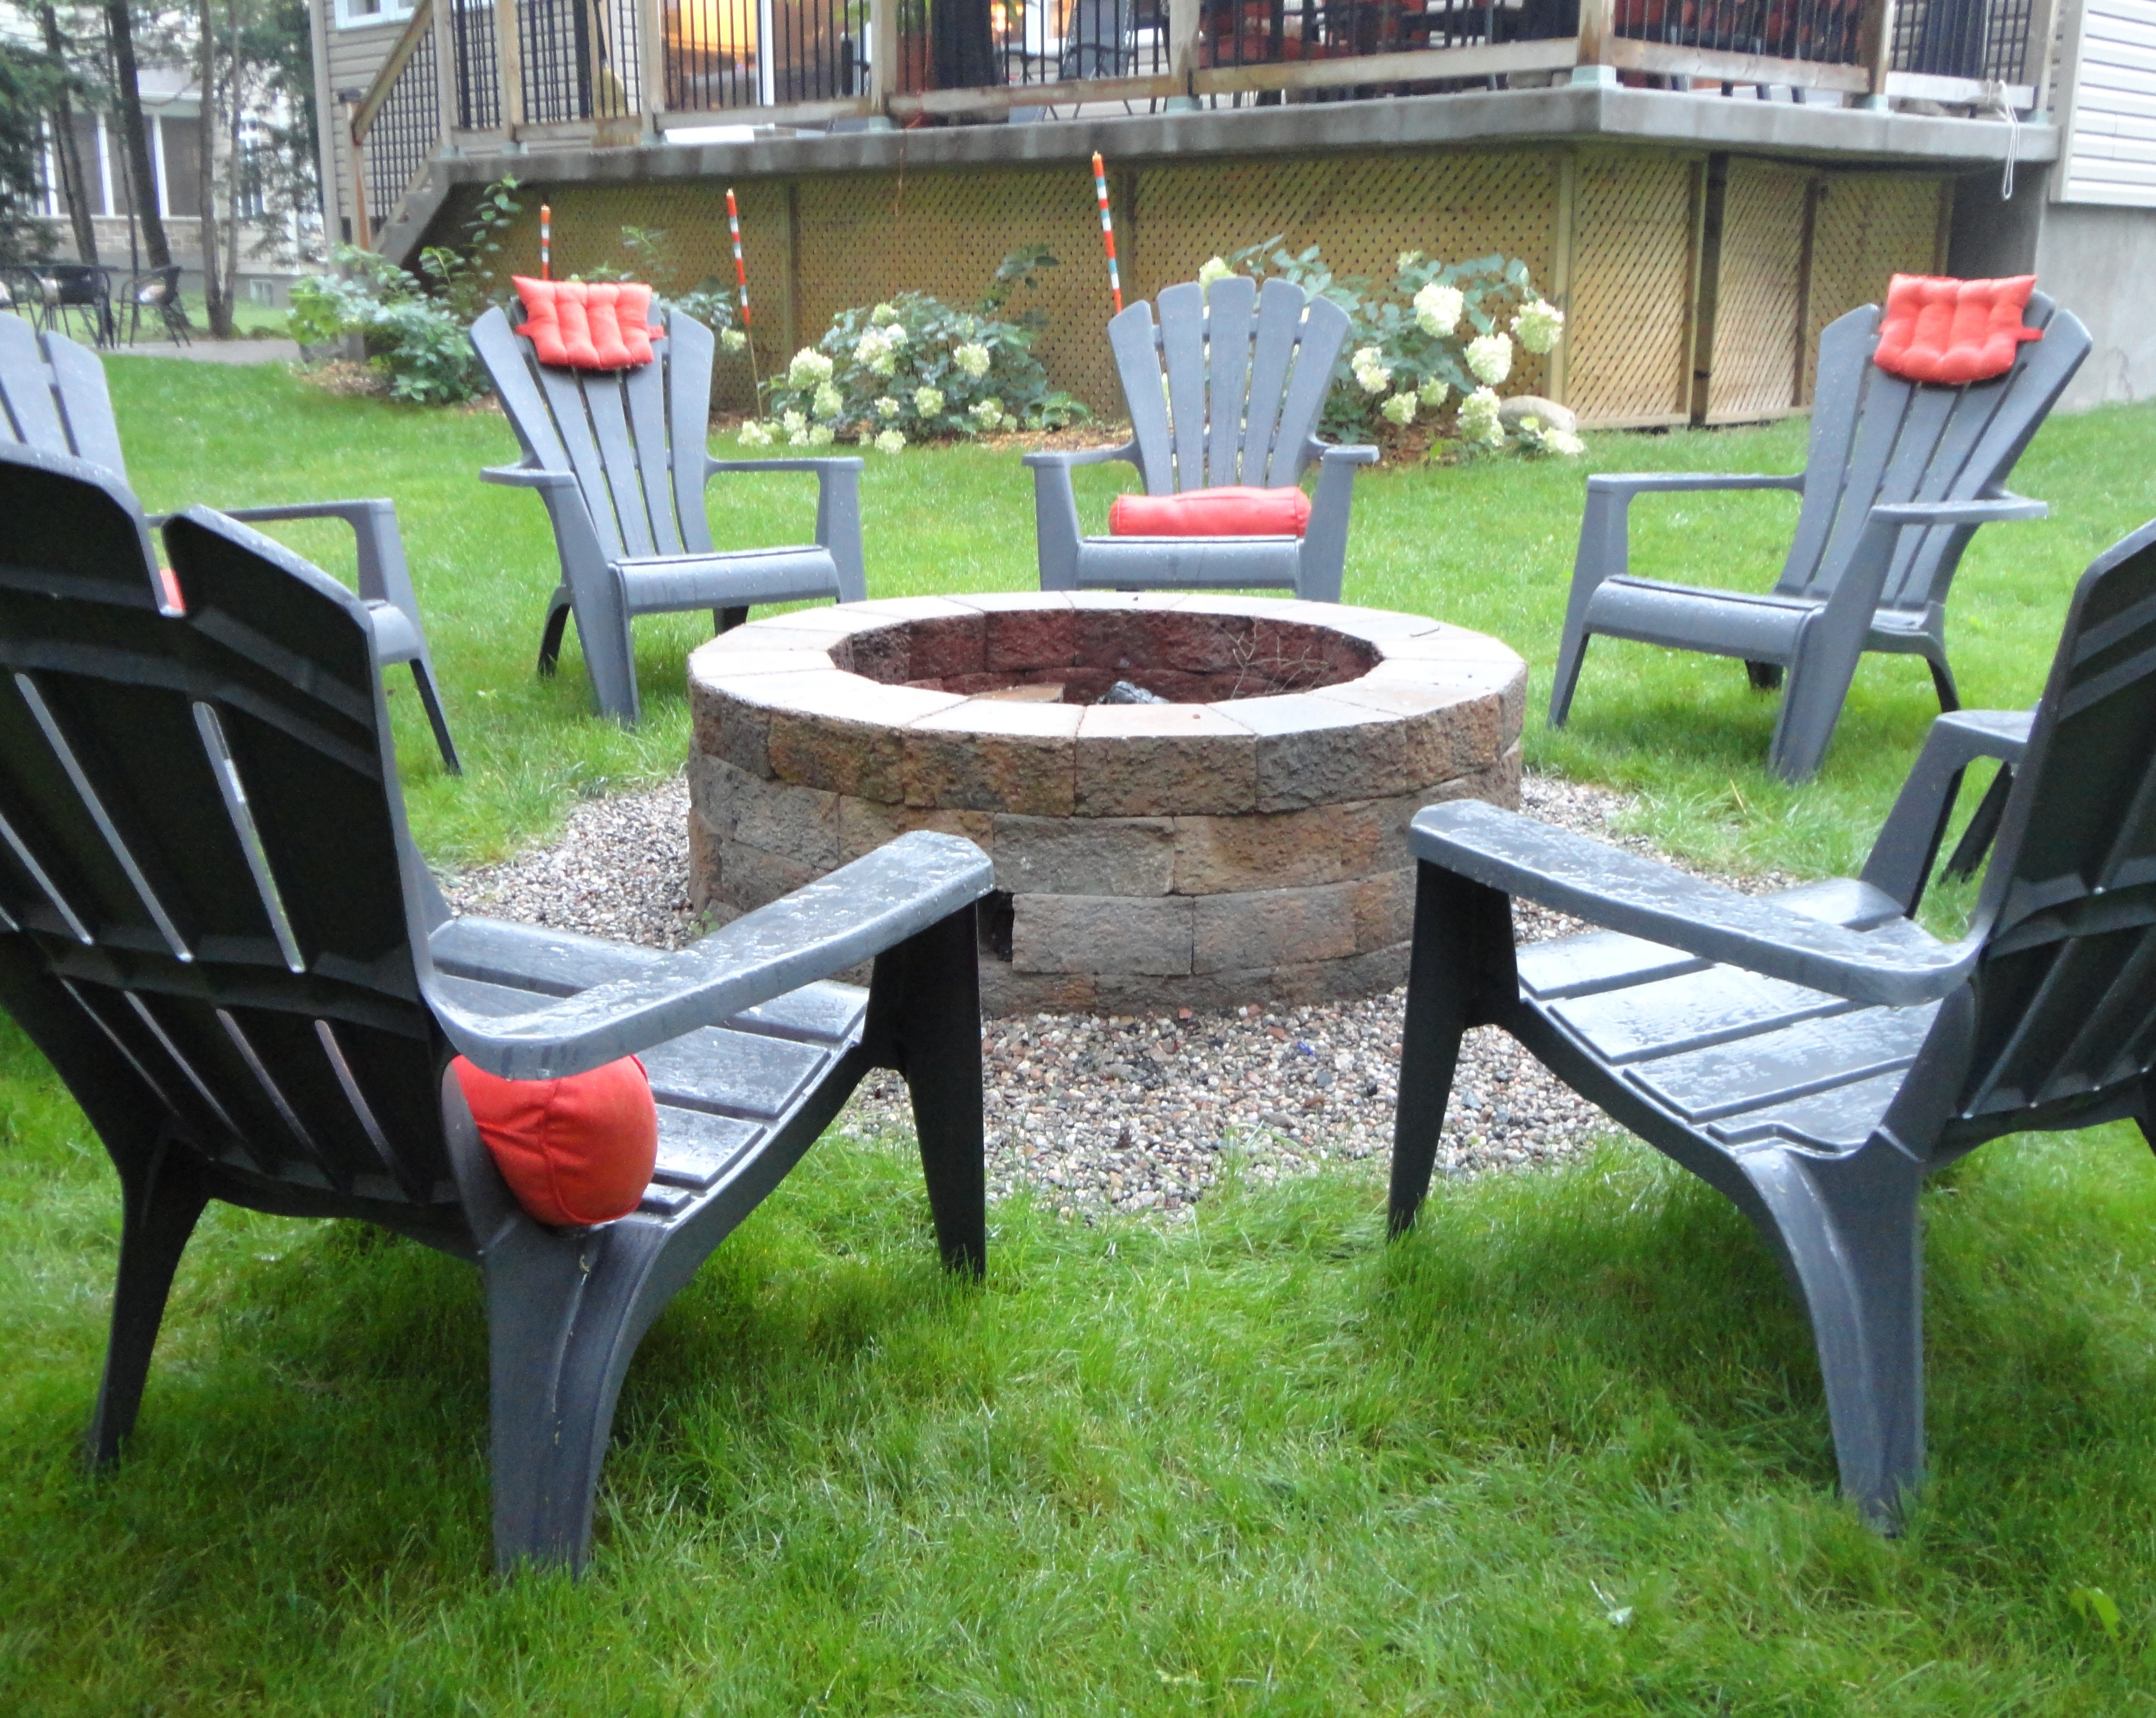 red adirondack chairs plastic office chair high back diy tales: building a backyard stone firepit by julie loves home | bob vila nation